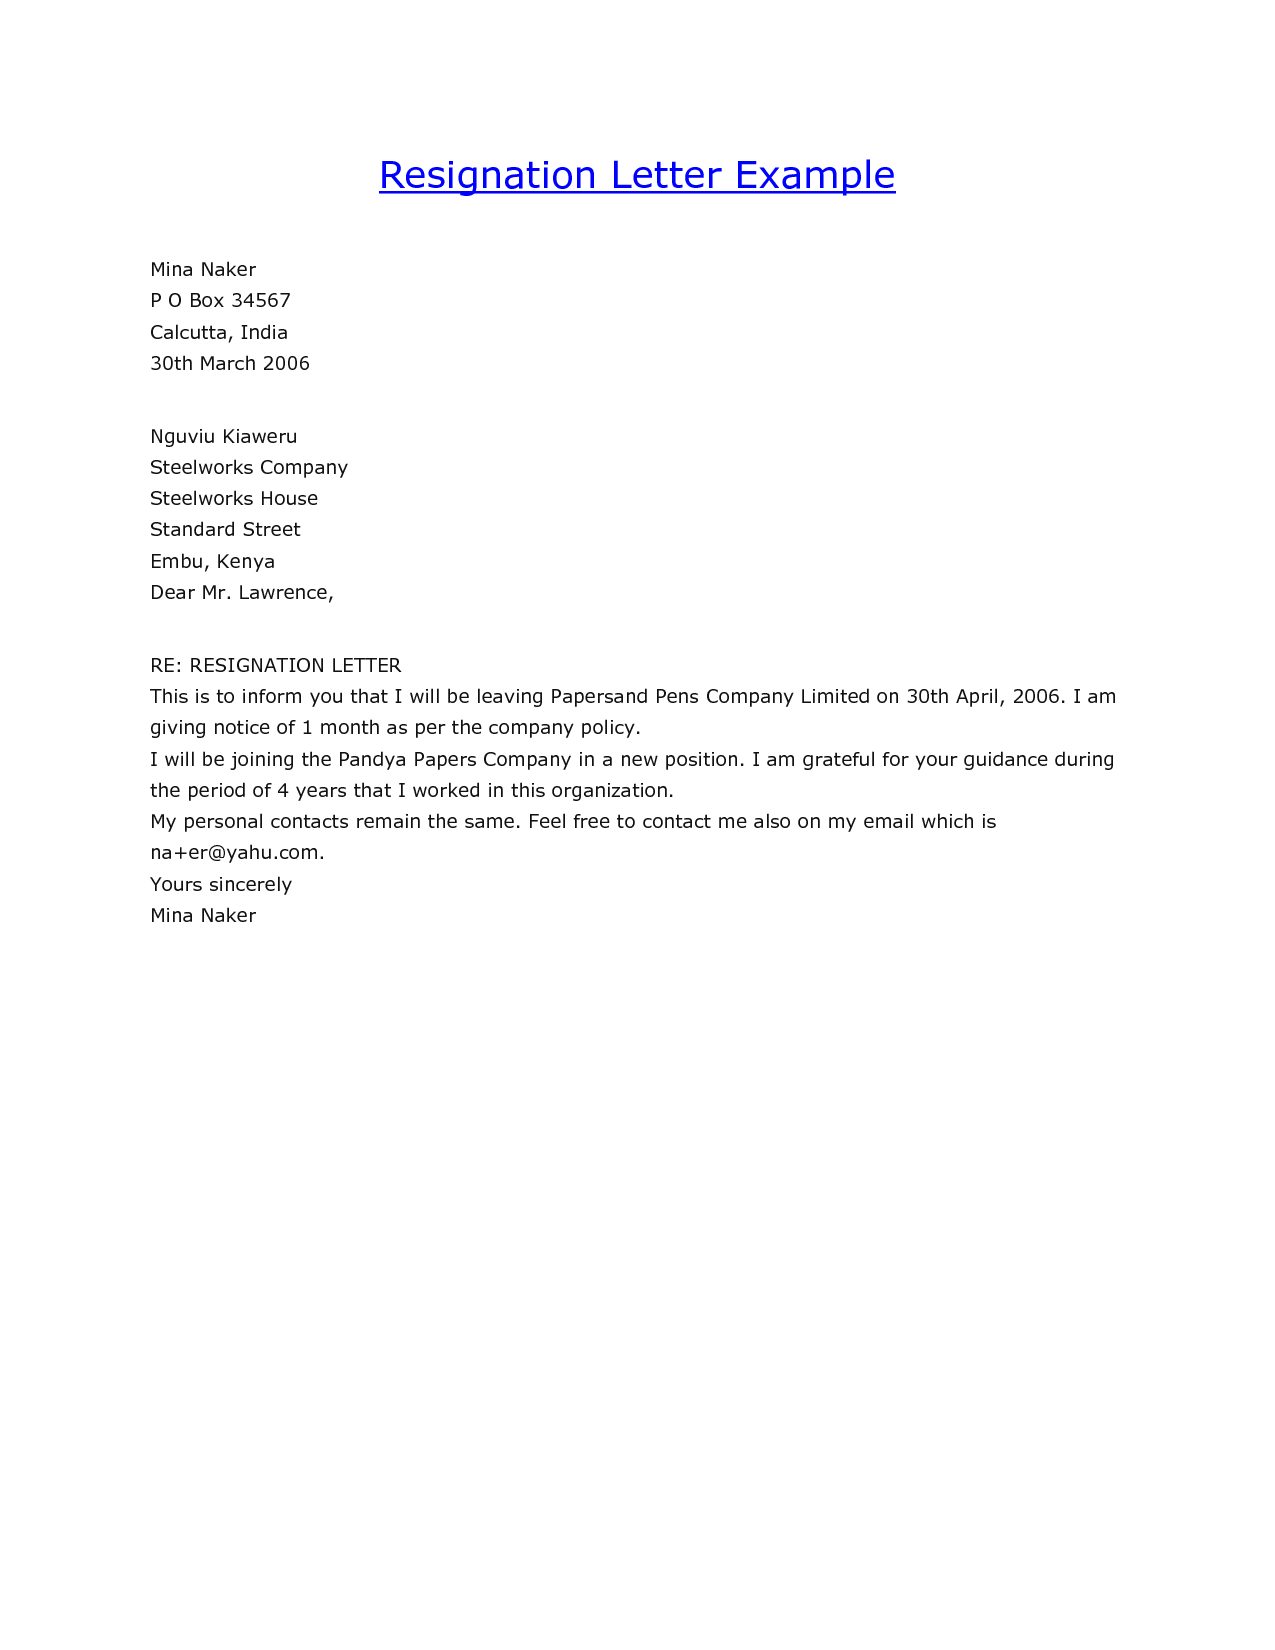 Stunning resignation letter sample format example ideas office stunning resignation letter sample format example ideas office through email samples job cover letters aljukfo Choice Image